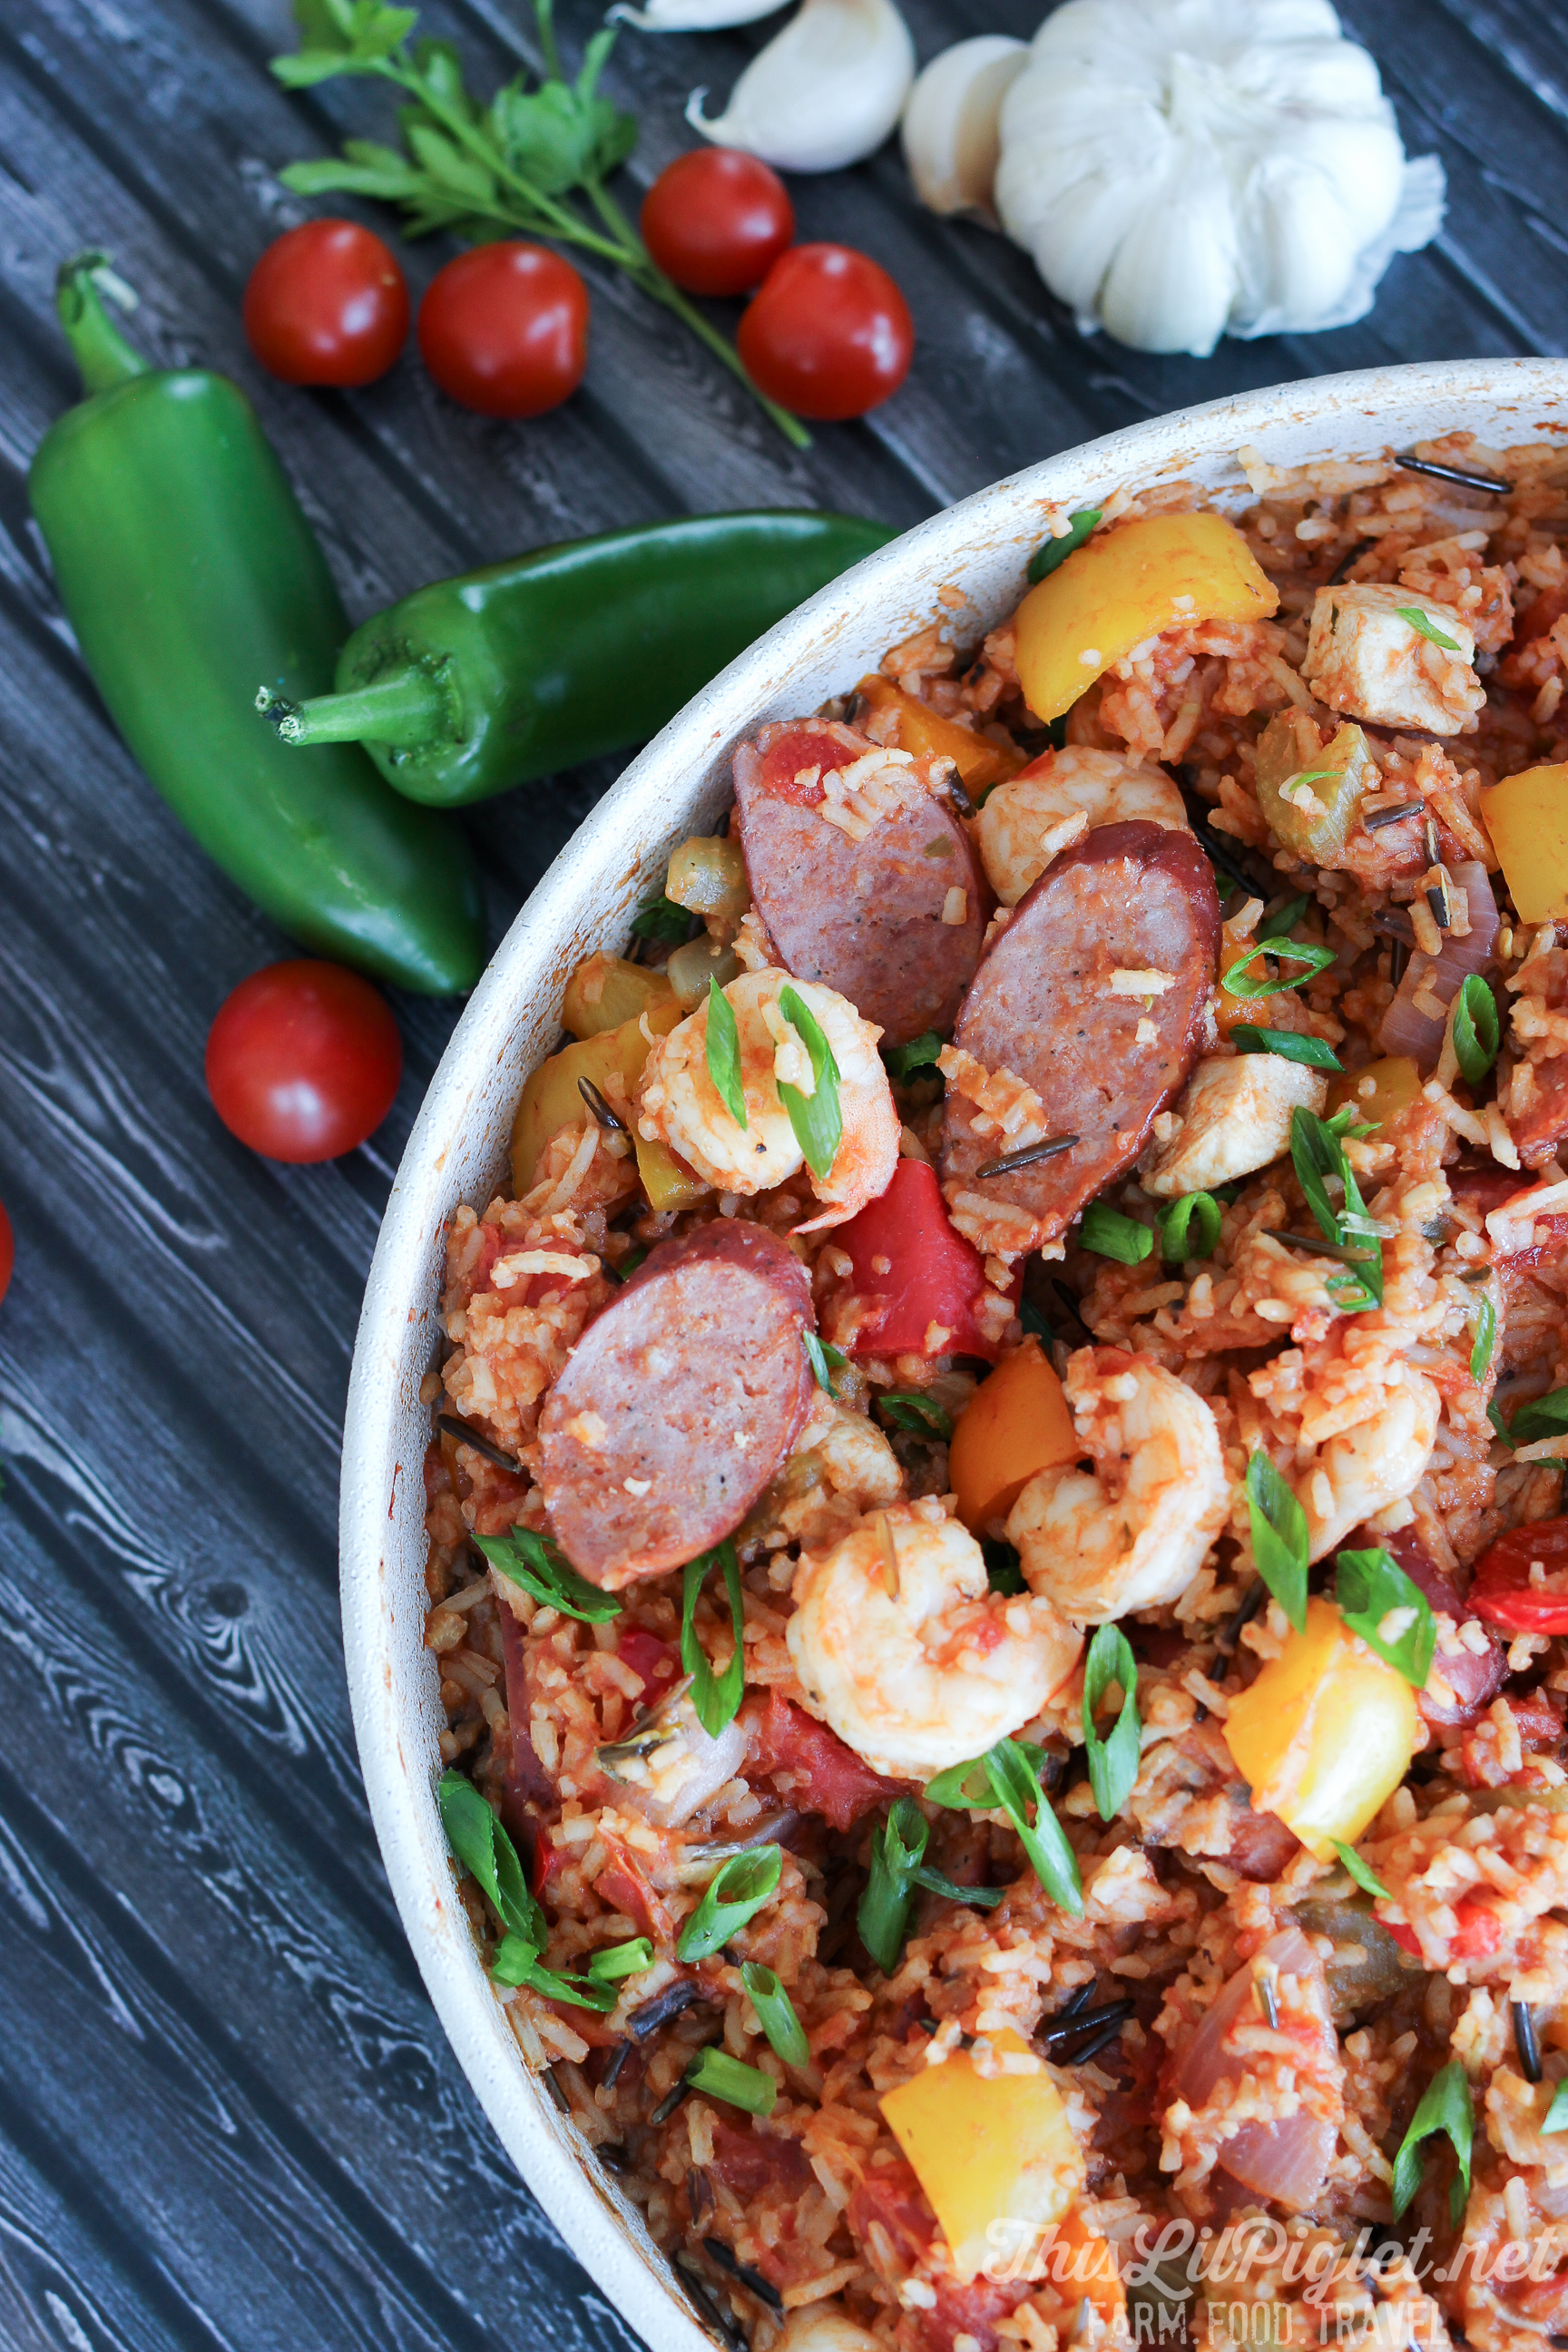 Jambalaya One Pot Meals with Chicken, Sausage, Shrimp and Wild Rice // via thislilpiglet.net